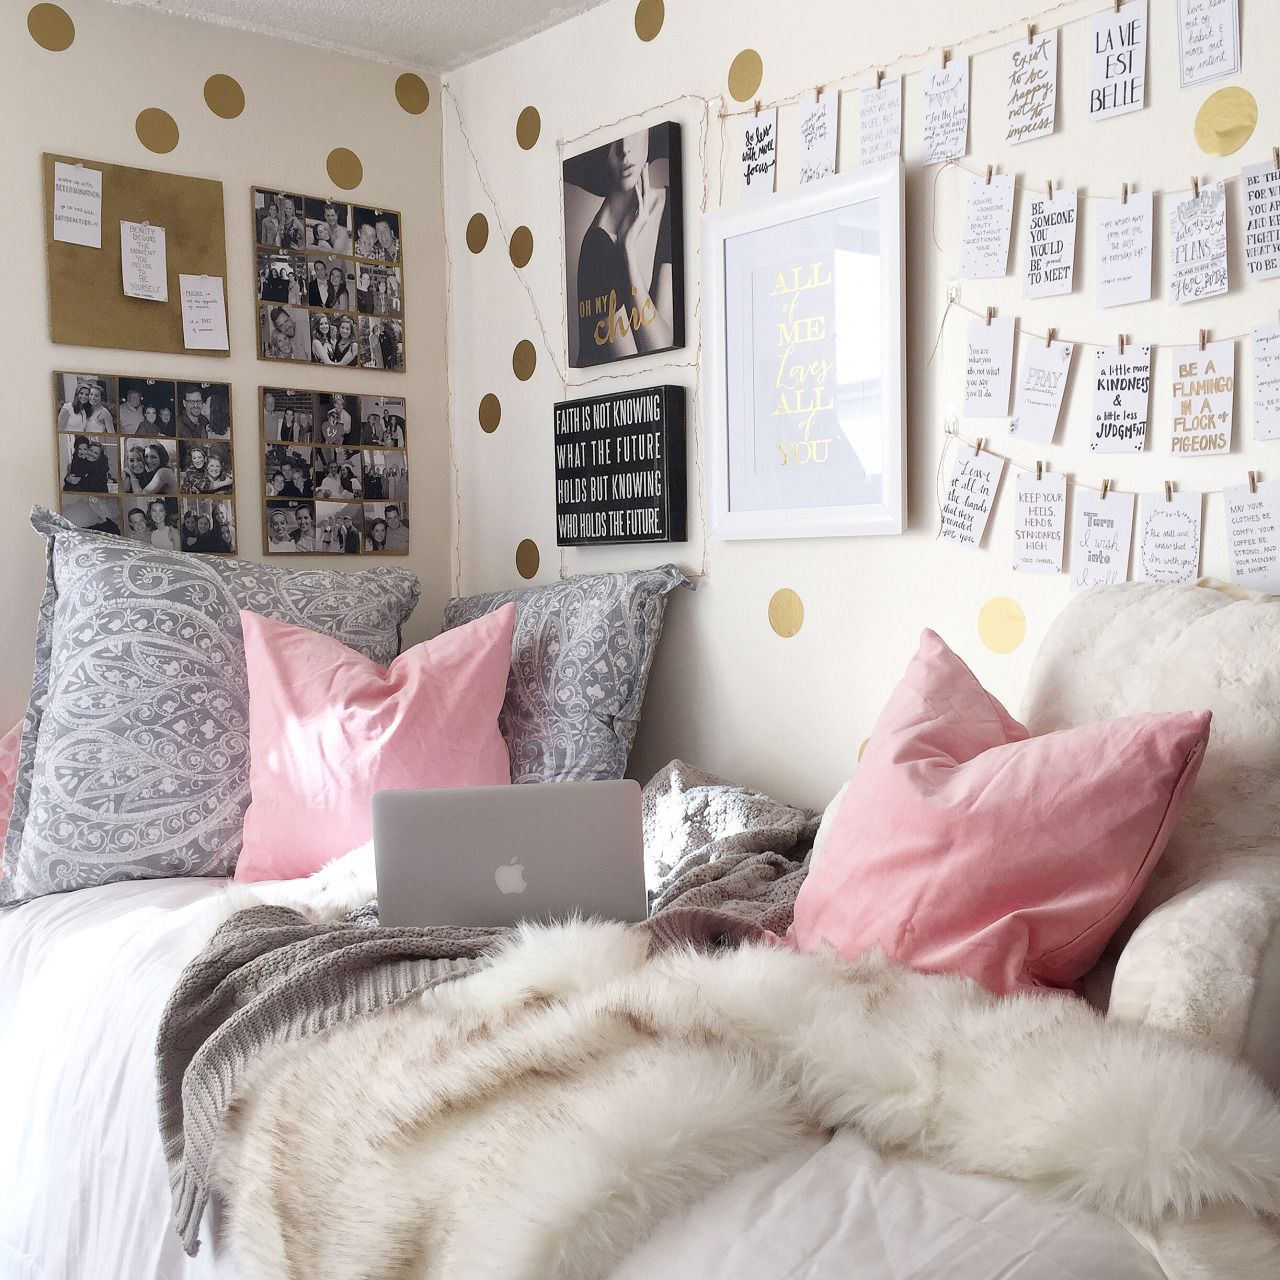 Cute diy room decor pinterest fashion institute of technology estylegenre submitted by